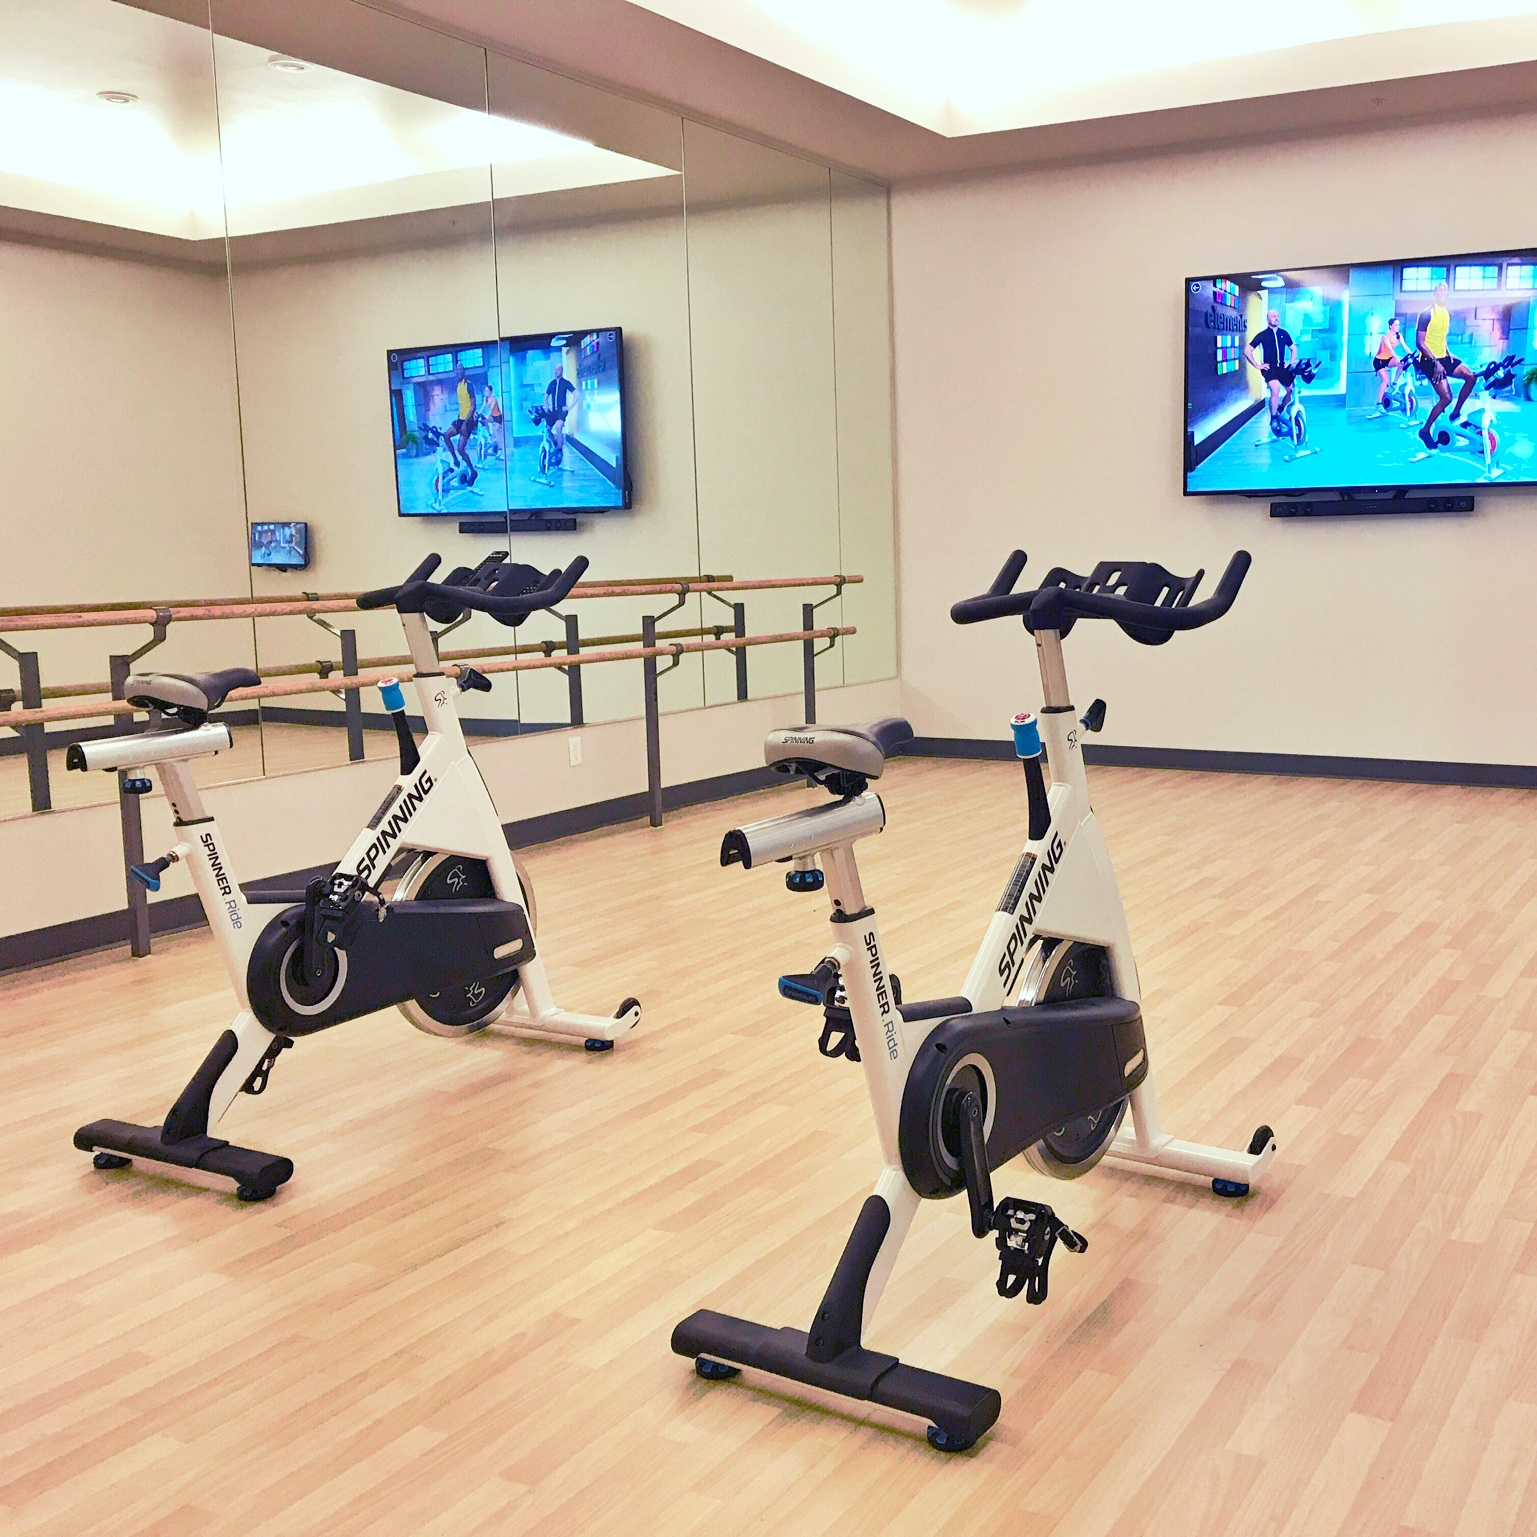 ORCHARD CROSSING APARTMENTS - We designed the Orchard Crossing fitness center for the way residents are working out today. Interactive cardio, on-demand fitness classes and more.